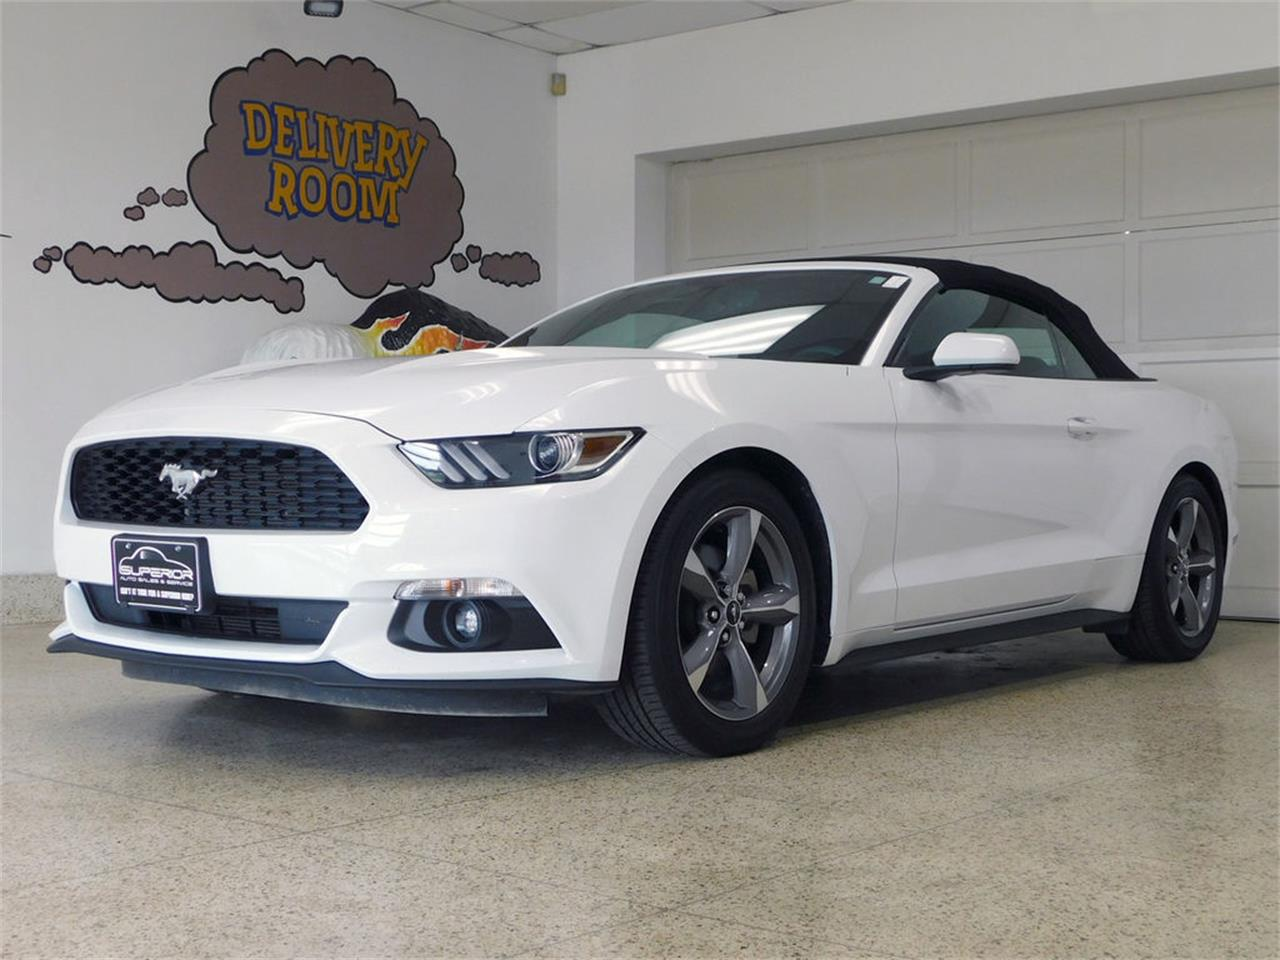 2016 Ford Mustang (CC-1383806) for sale in Hamburg, New York